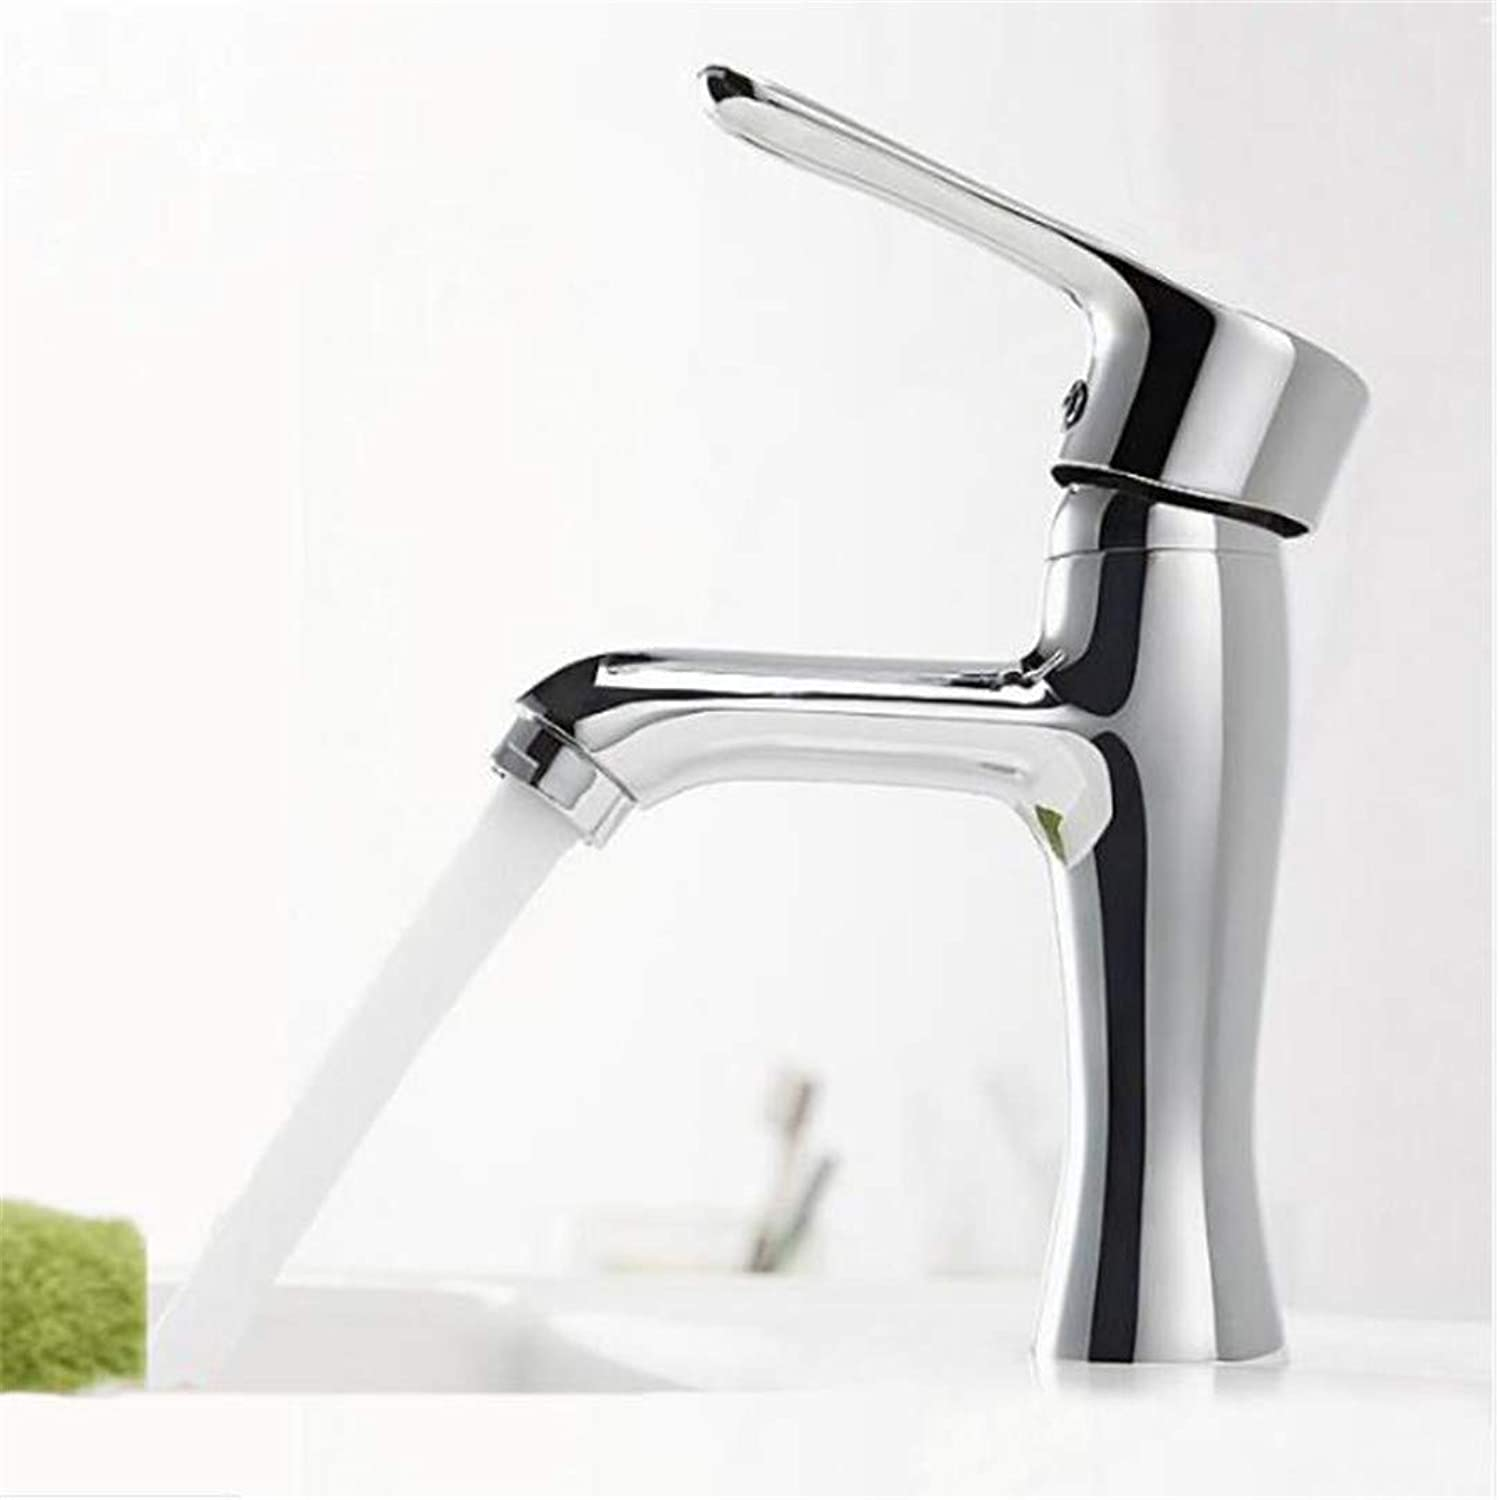 Faucet Washbasin Mixer Modern Bathroom Products Chrome Finished Hot and Cold Water Basin Faucet Mixer Single Handle Water Tap Torneira